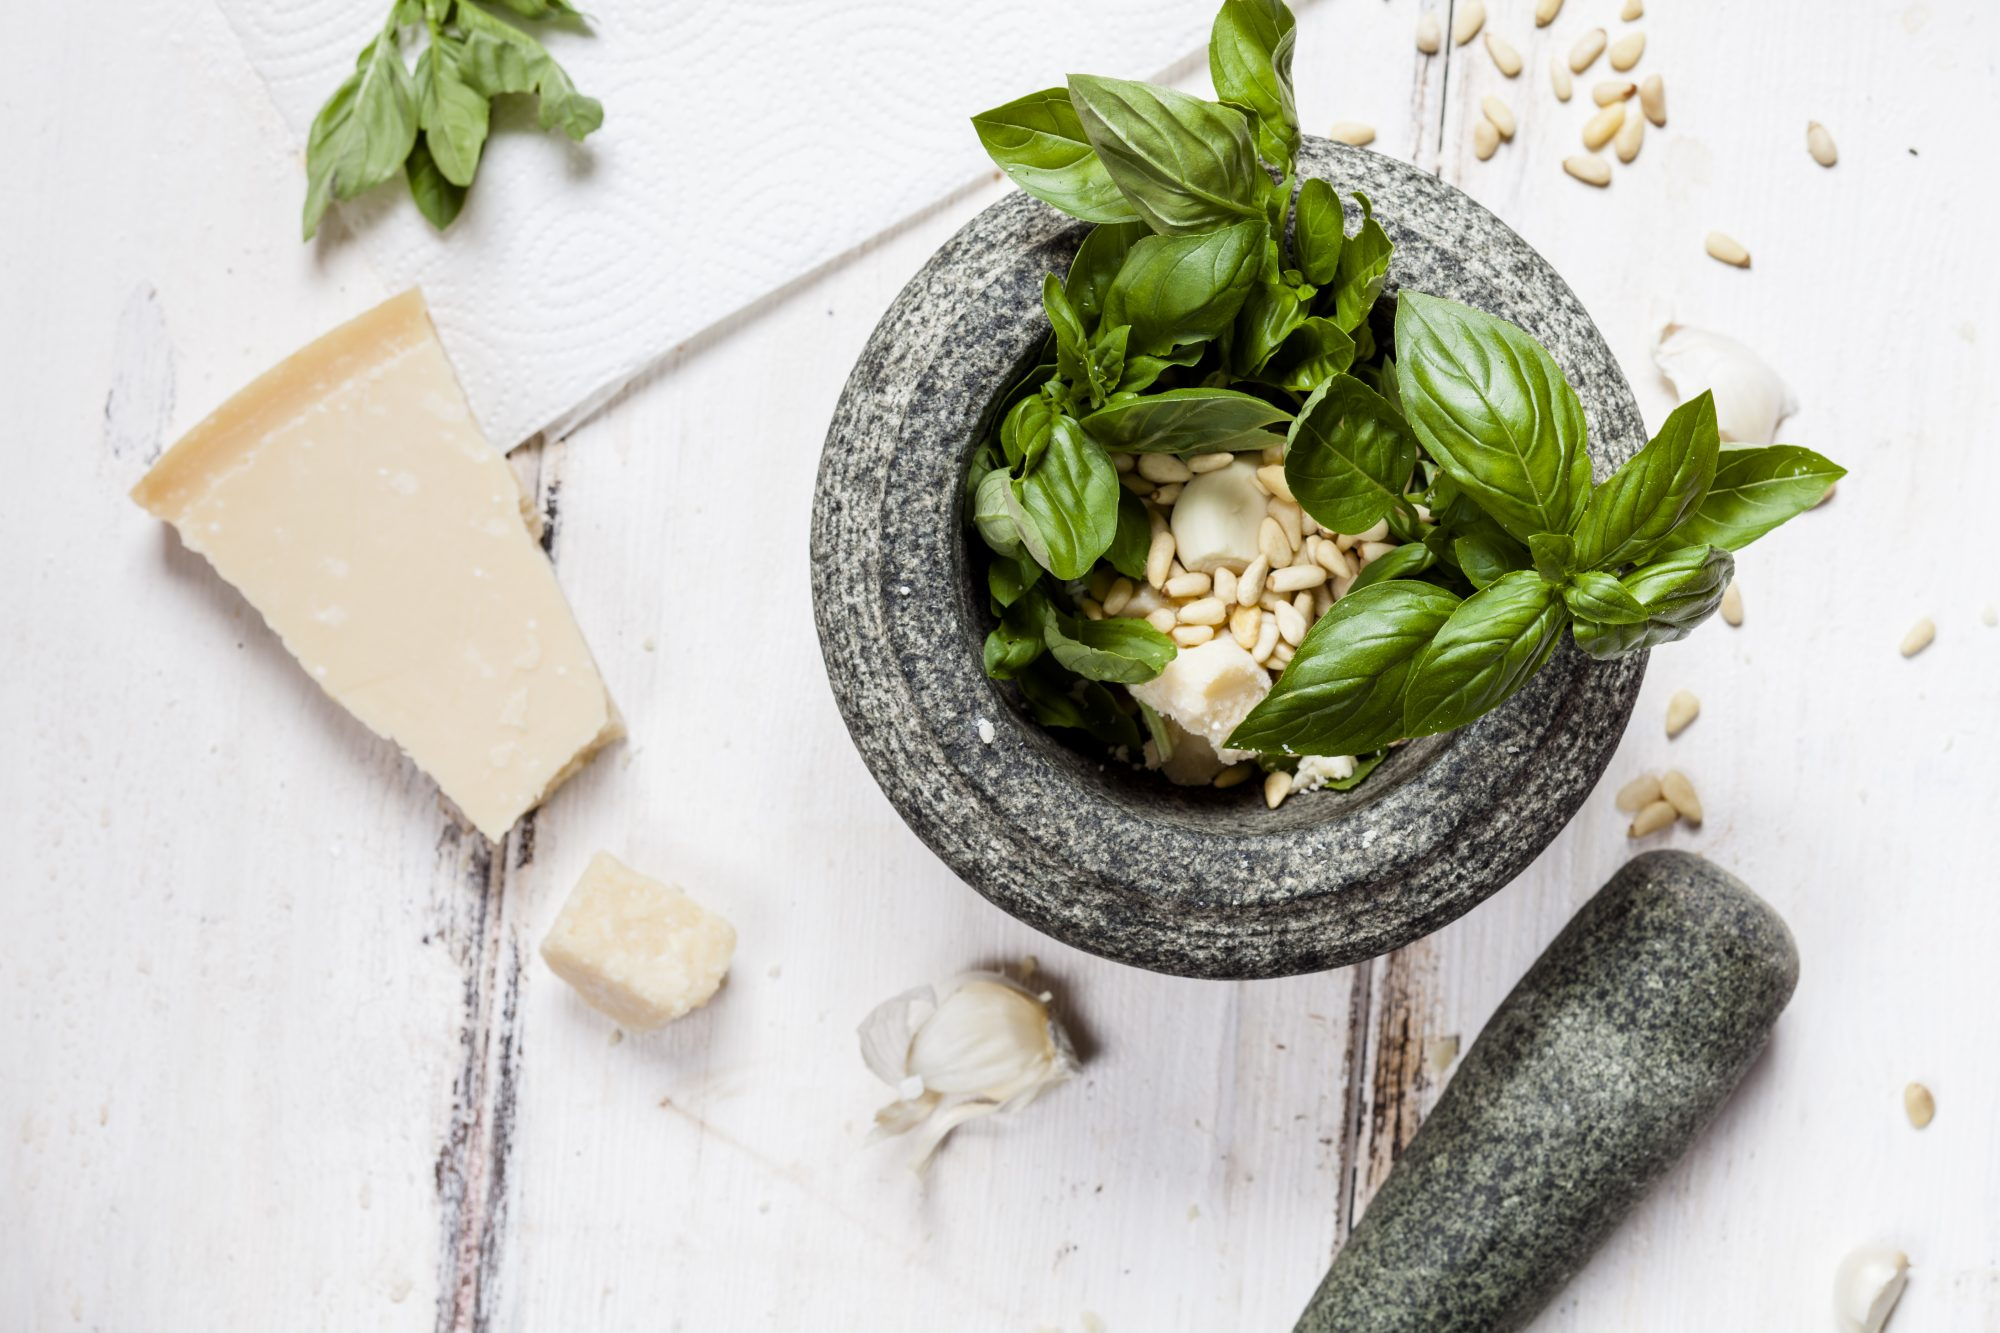 Preparing pesto alla genovese with mortar